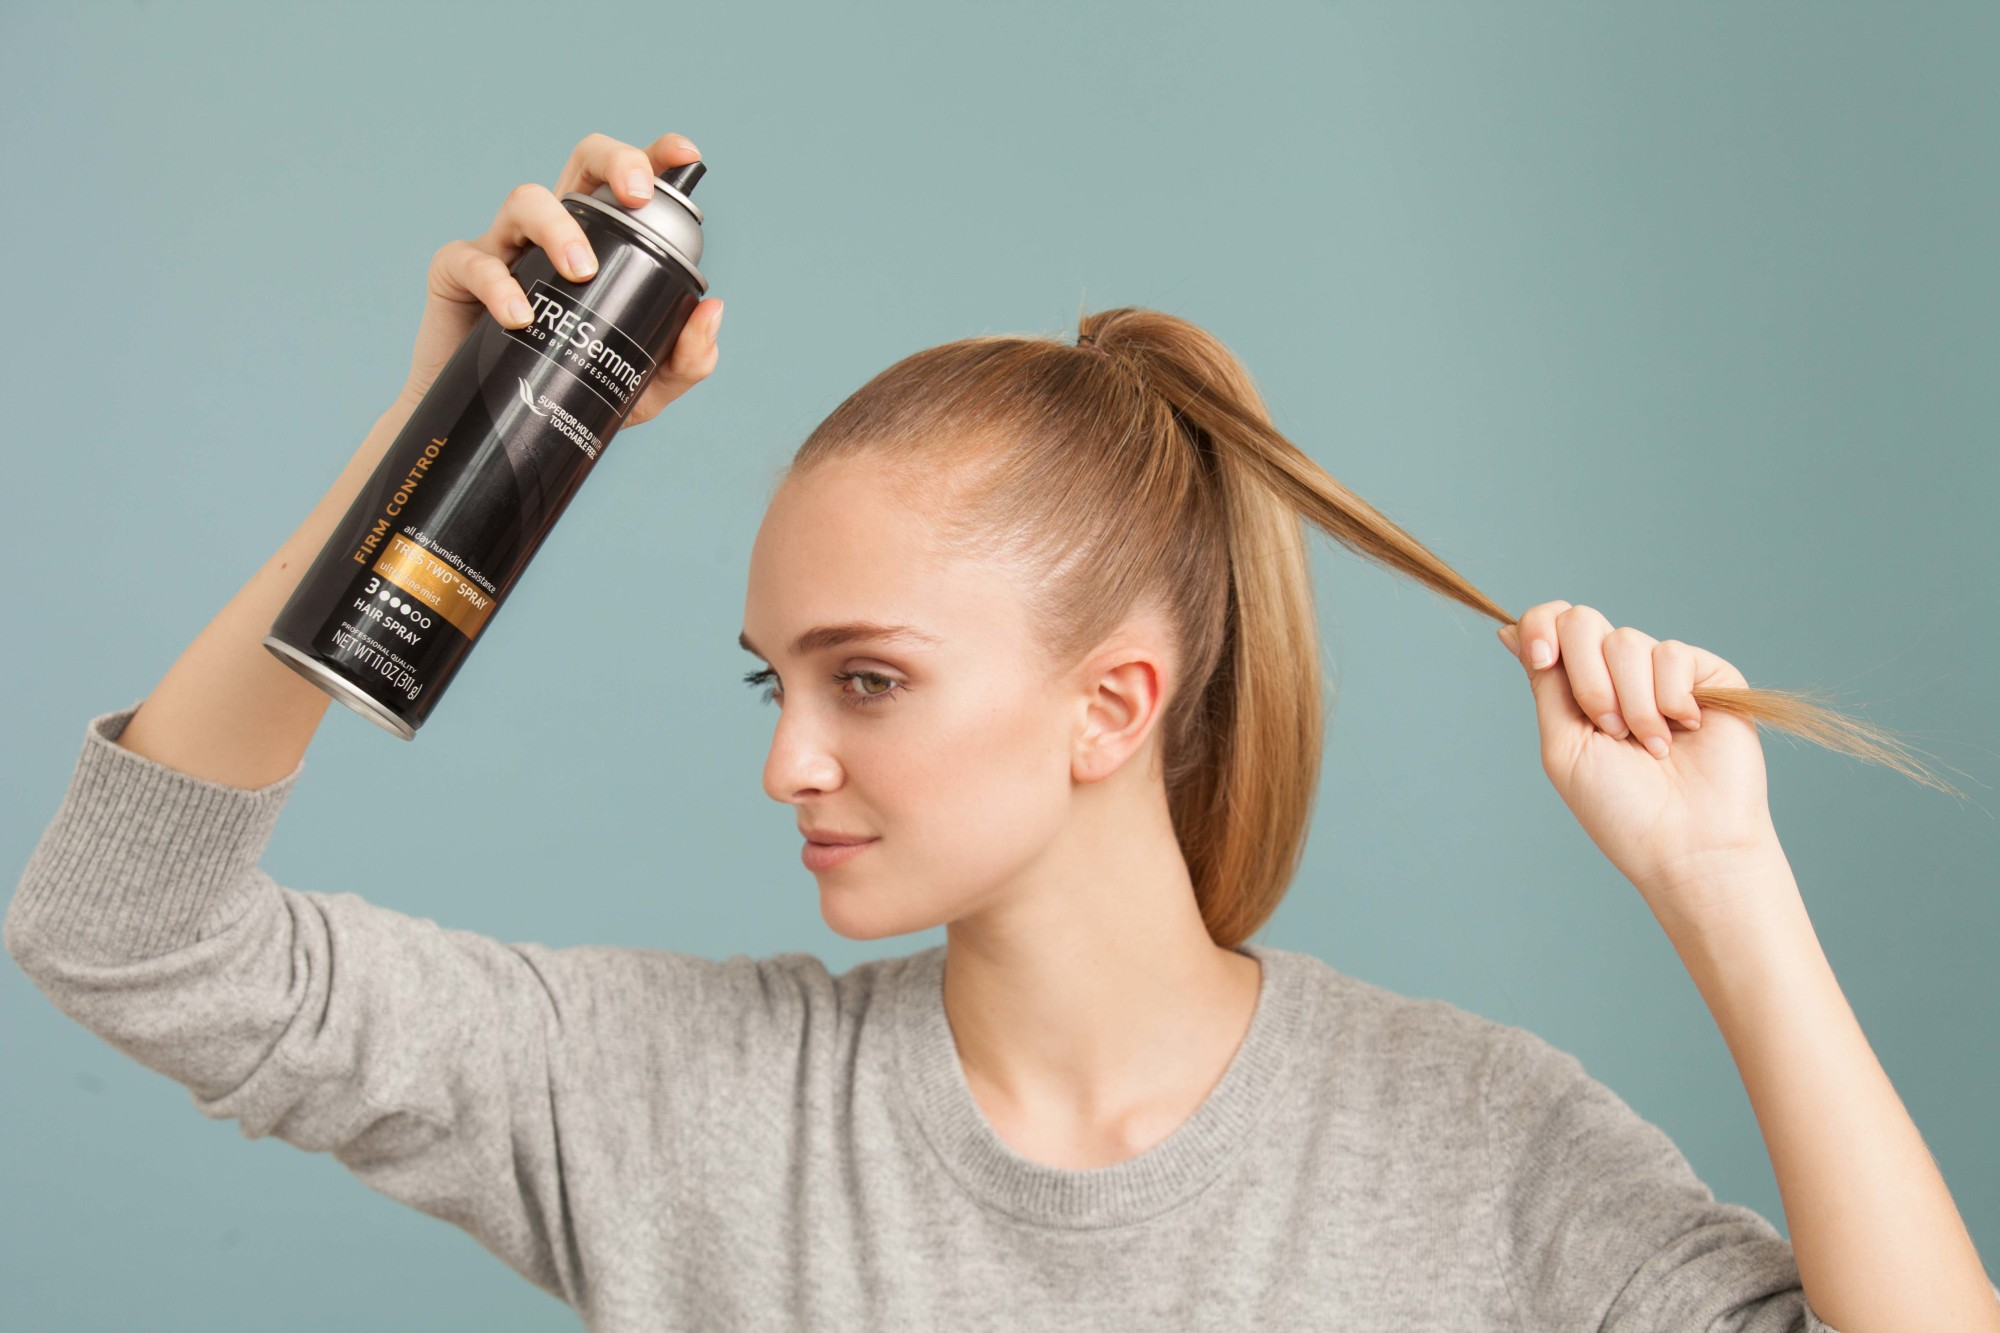 Set hair with hairspray